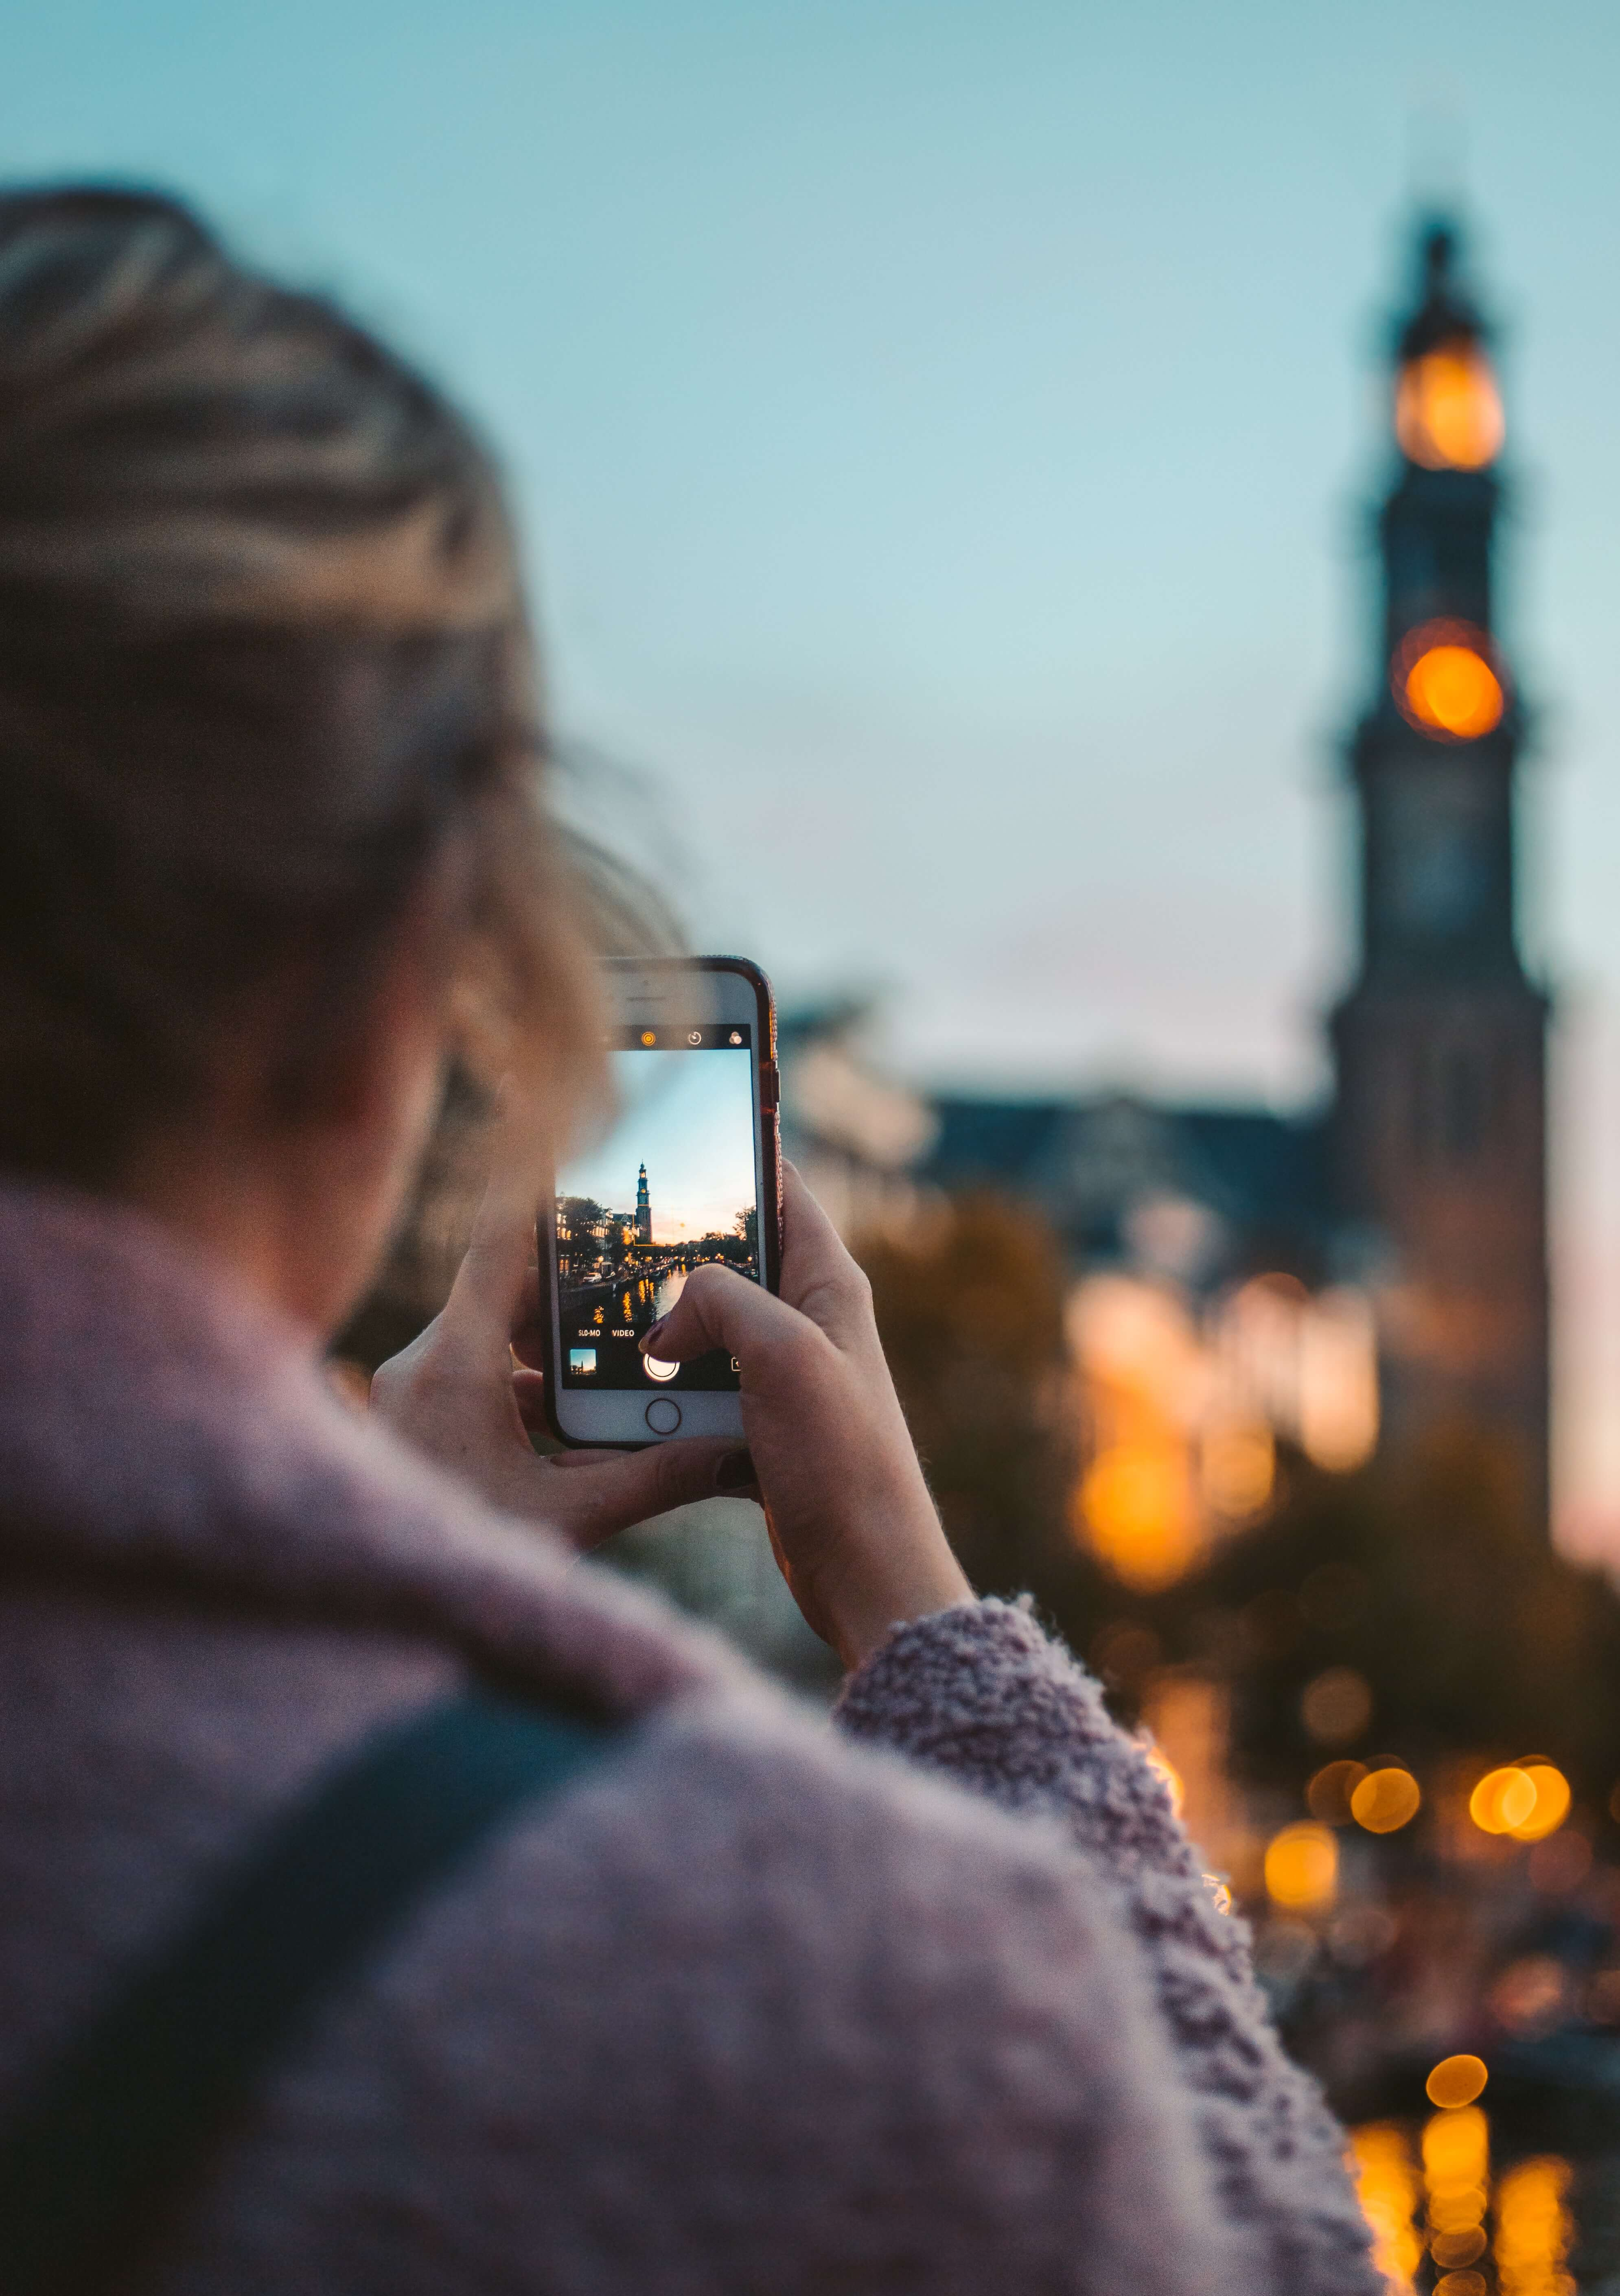 The perfect gift newly wed gift: iPhone photography course from Flytographer